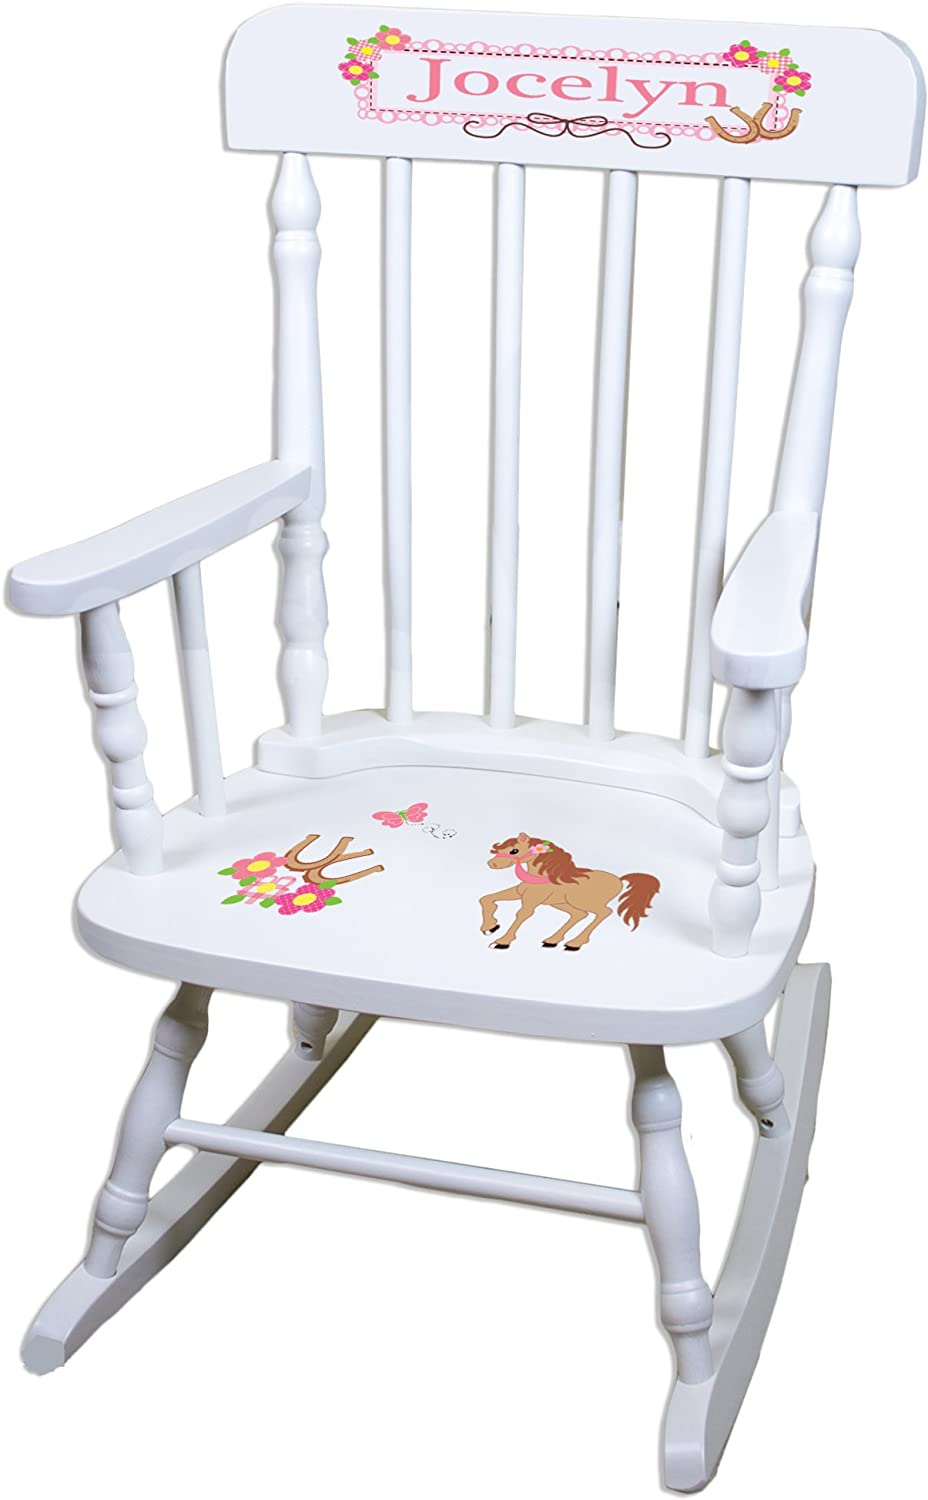 Personalized Ponies Prancing Limited time sale Colorado Springs Mall White Rocking Childrens Chair